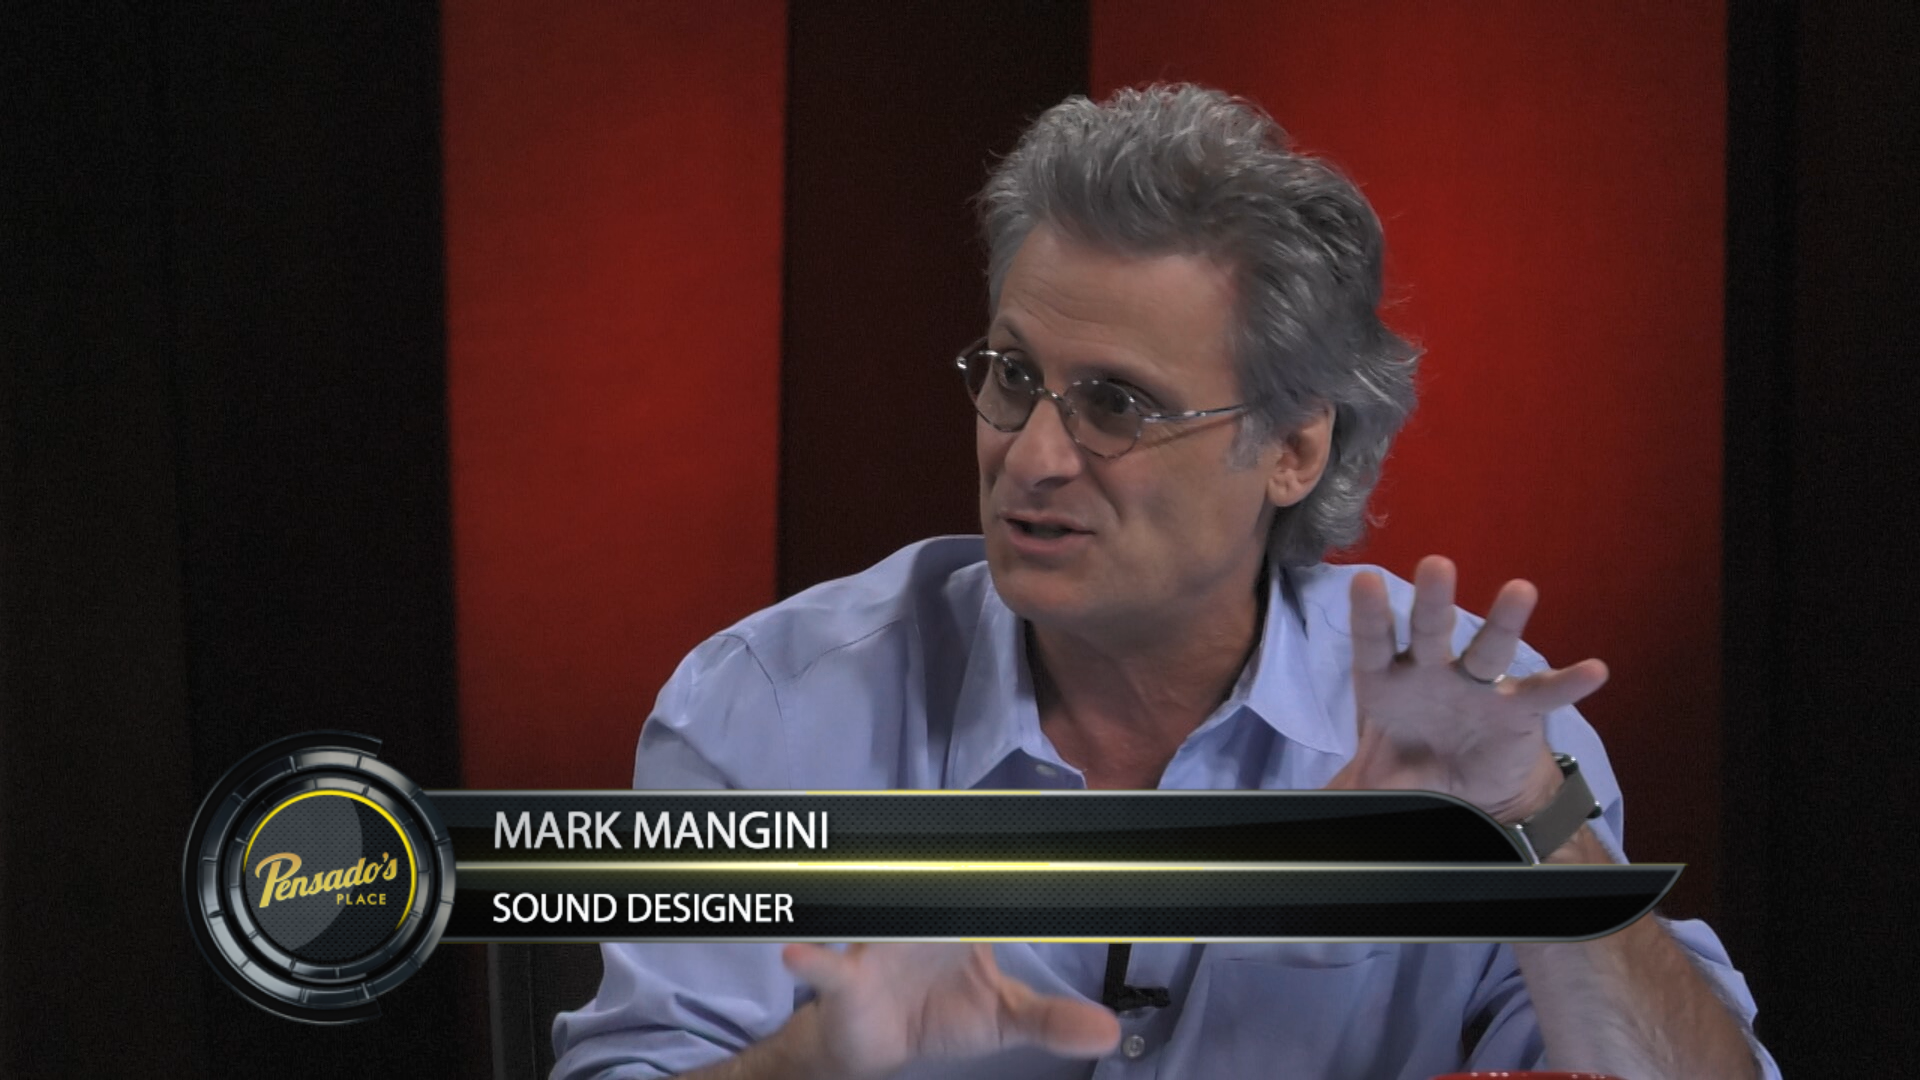 Academy Award Winning Sound Designer Mark Mangini